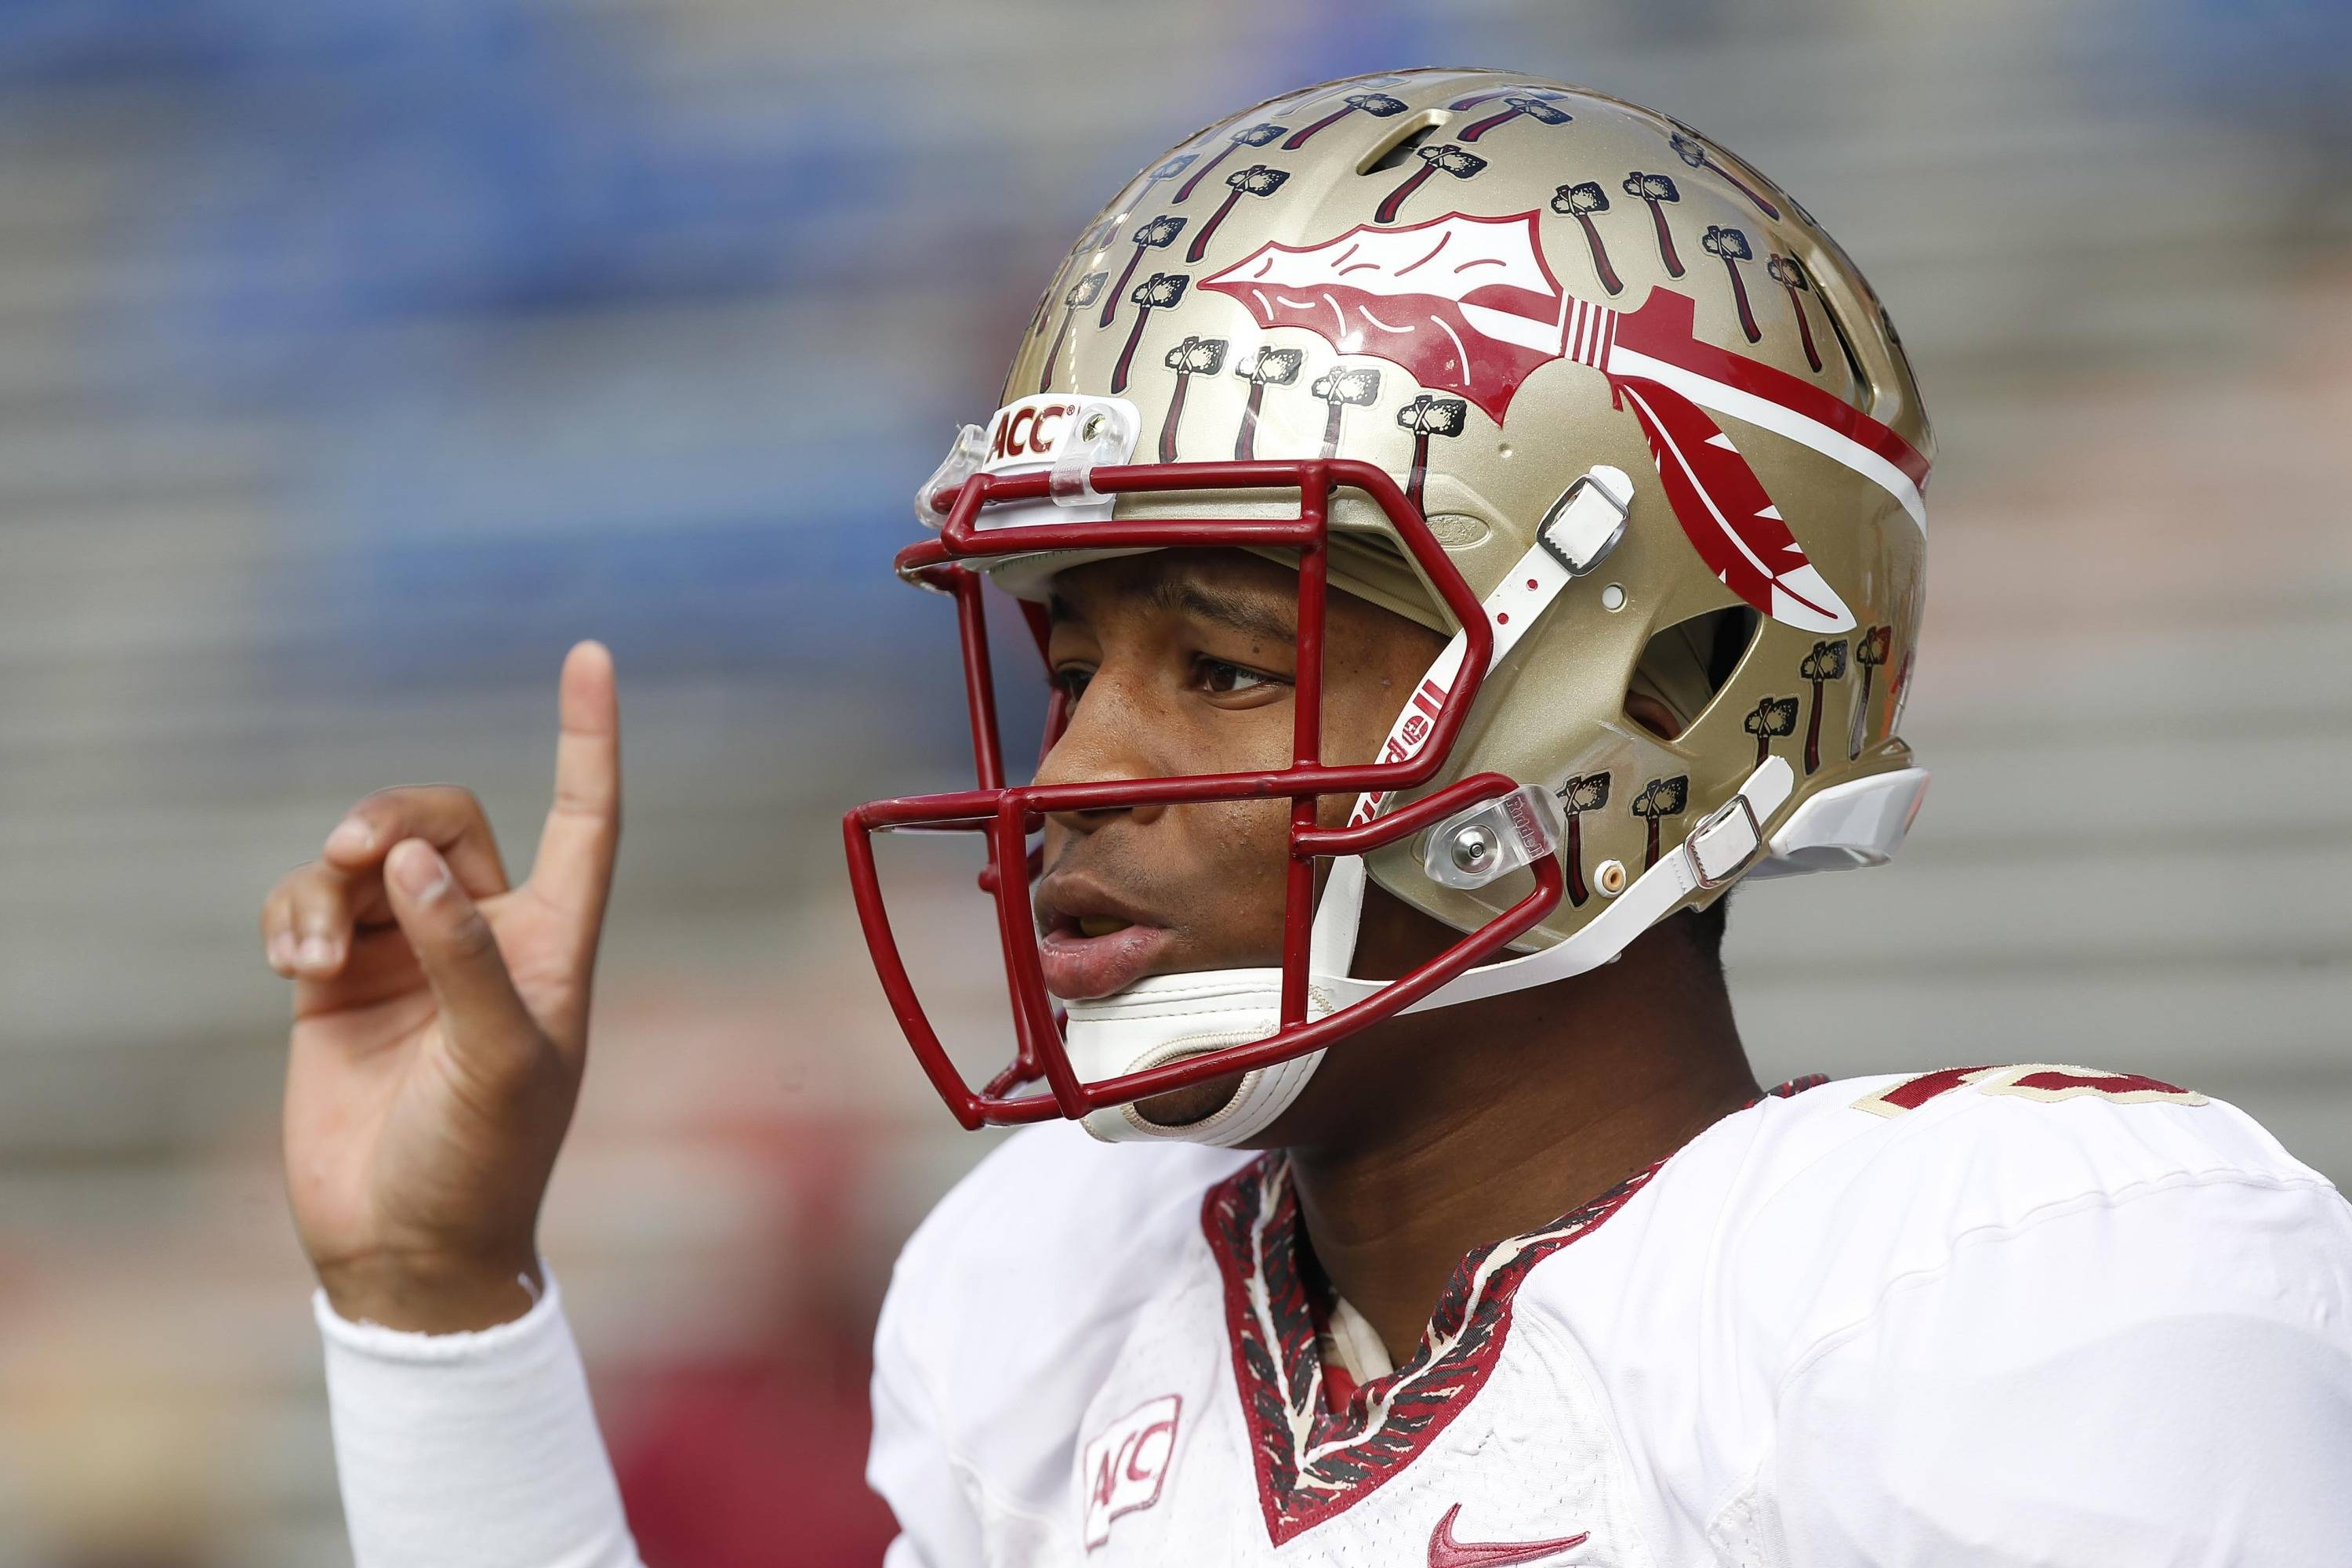 Jameis Winston (5) works out prior to the game. Mandatory Credit: Kim Klement-USA TODAY Sports